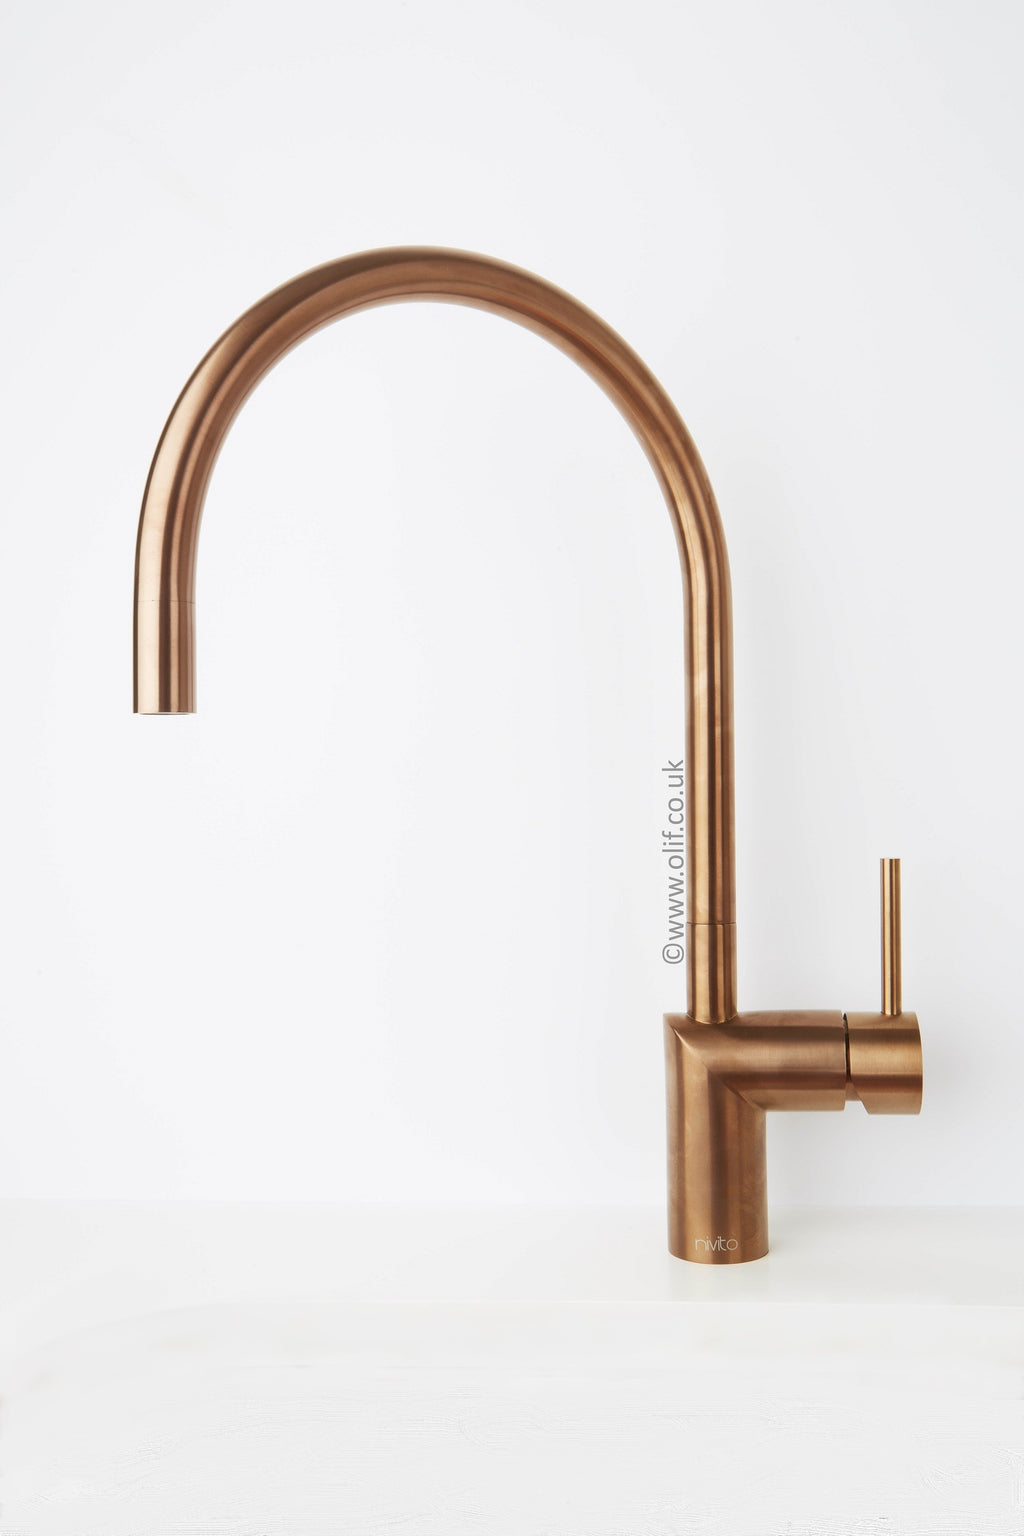 Nivito RH 150 Brushed Copper, kitchen mixer tap